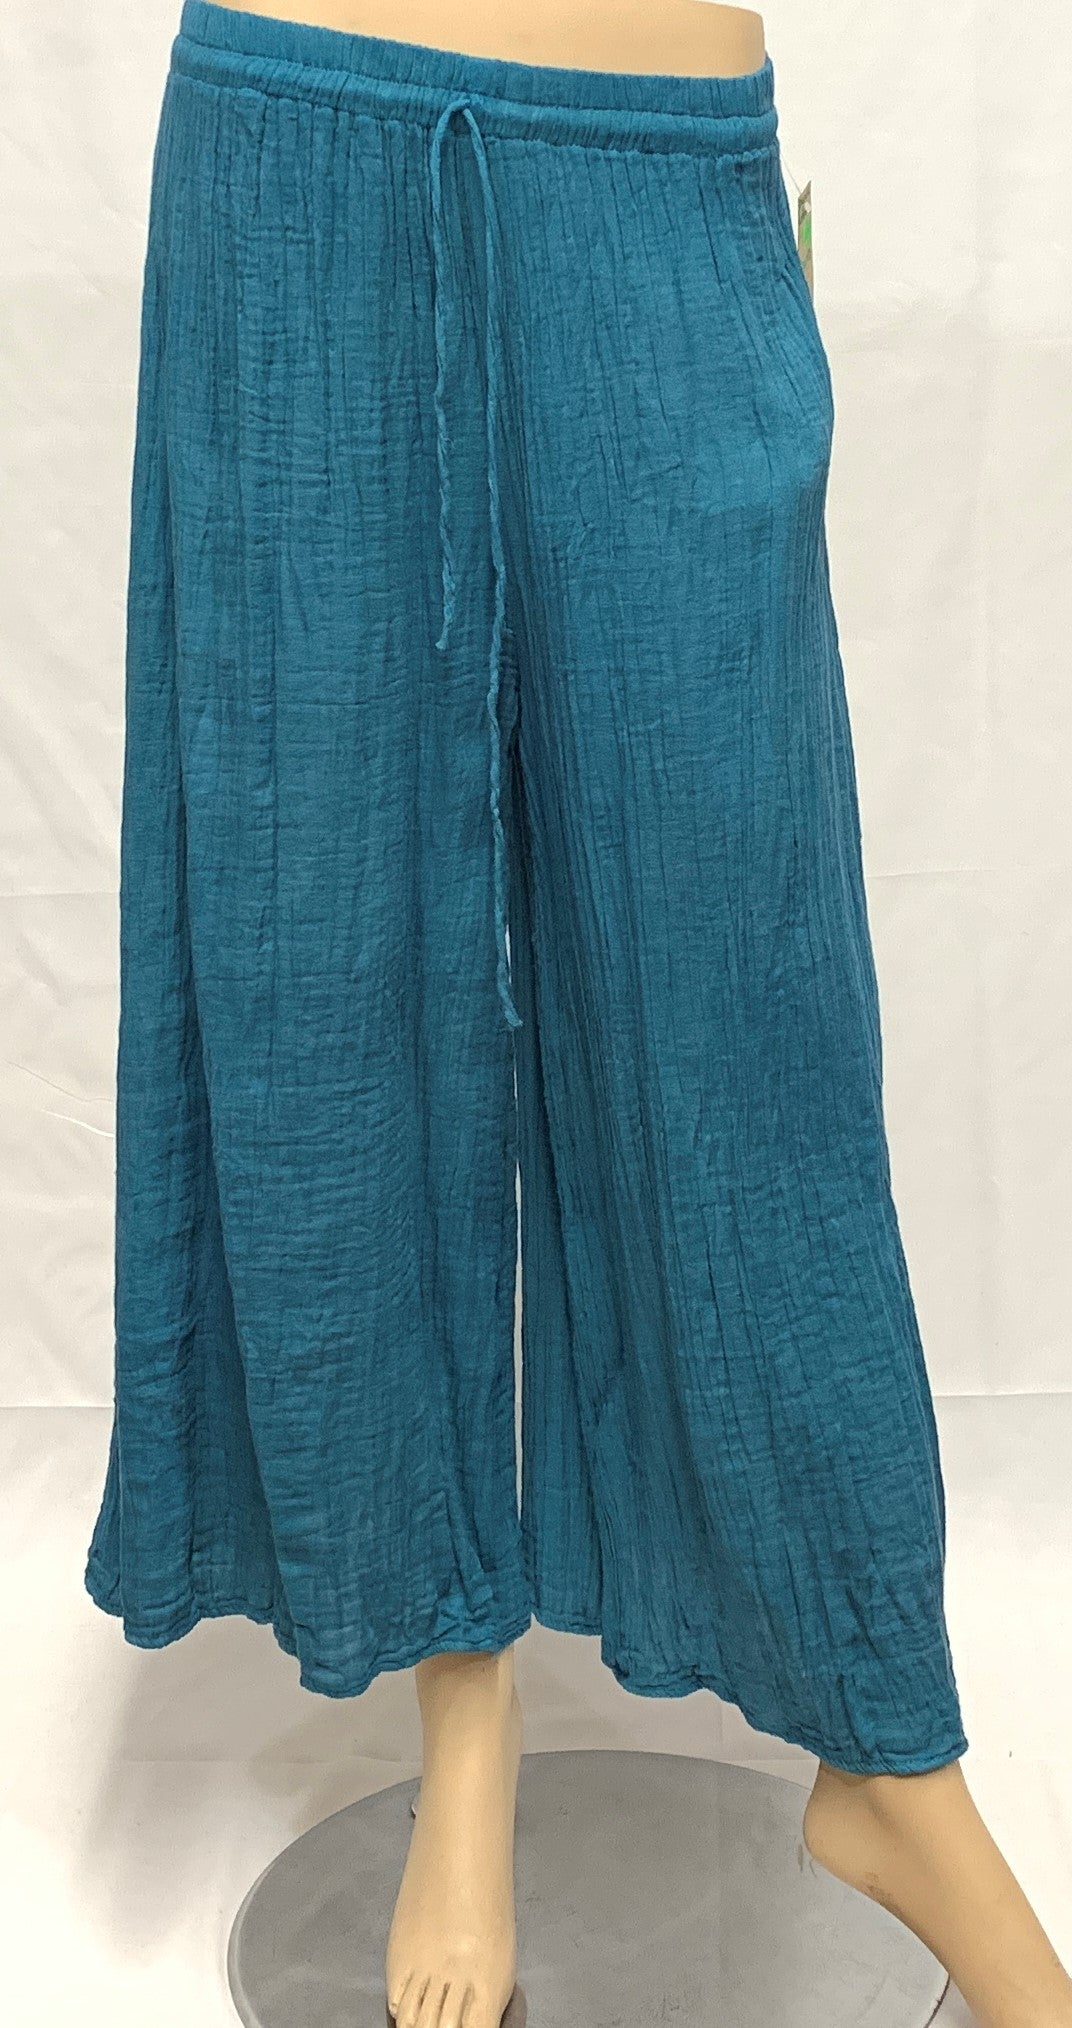 Ankle Cotton Crinkled Pant